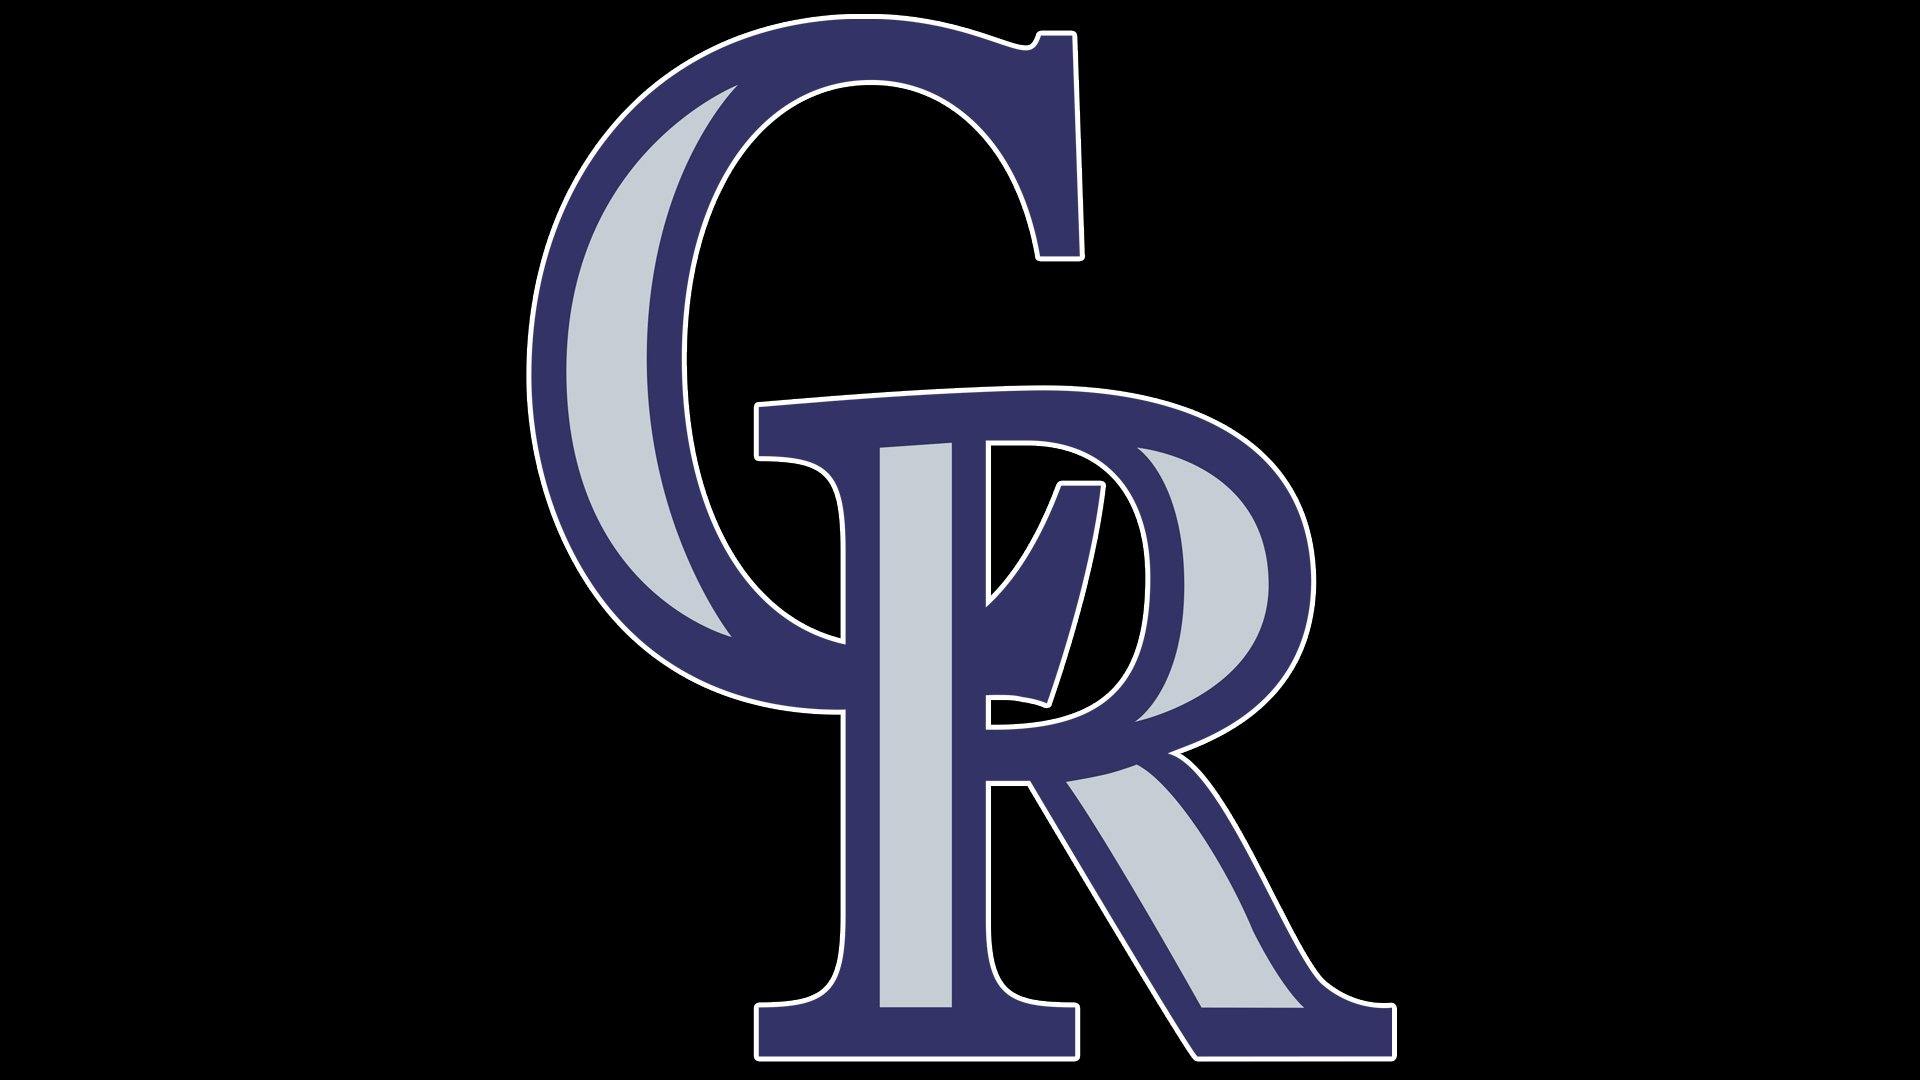 colorado rockies logo coloring pages - photo#26